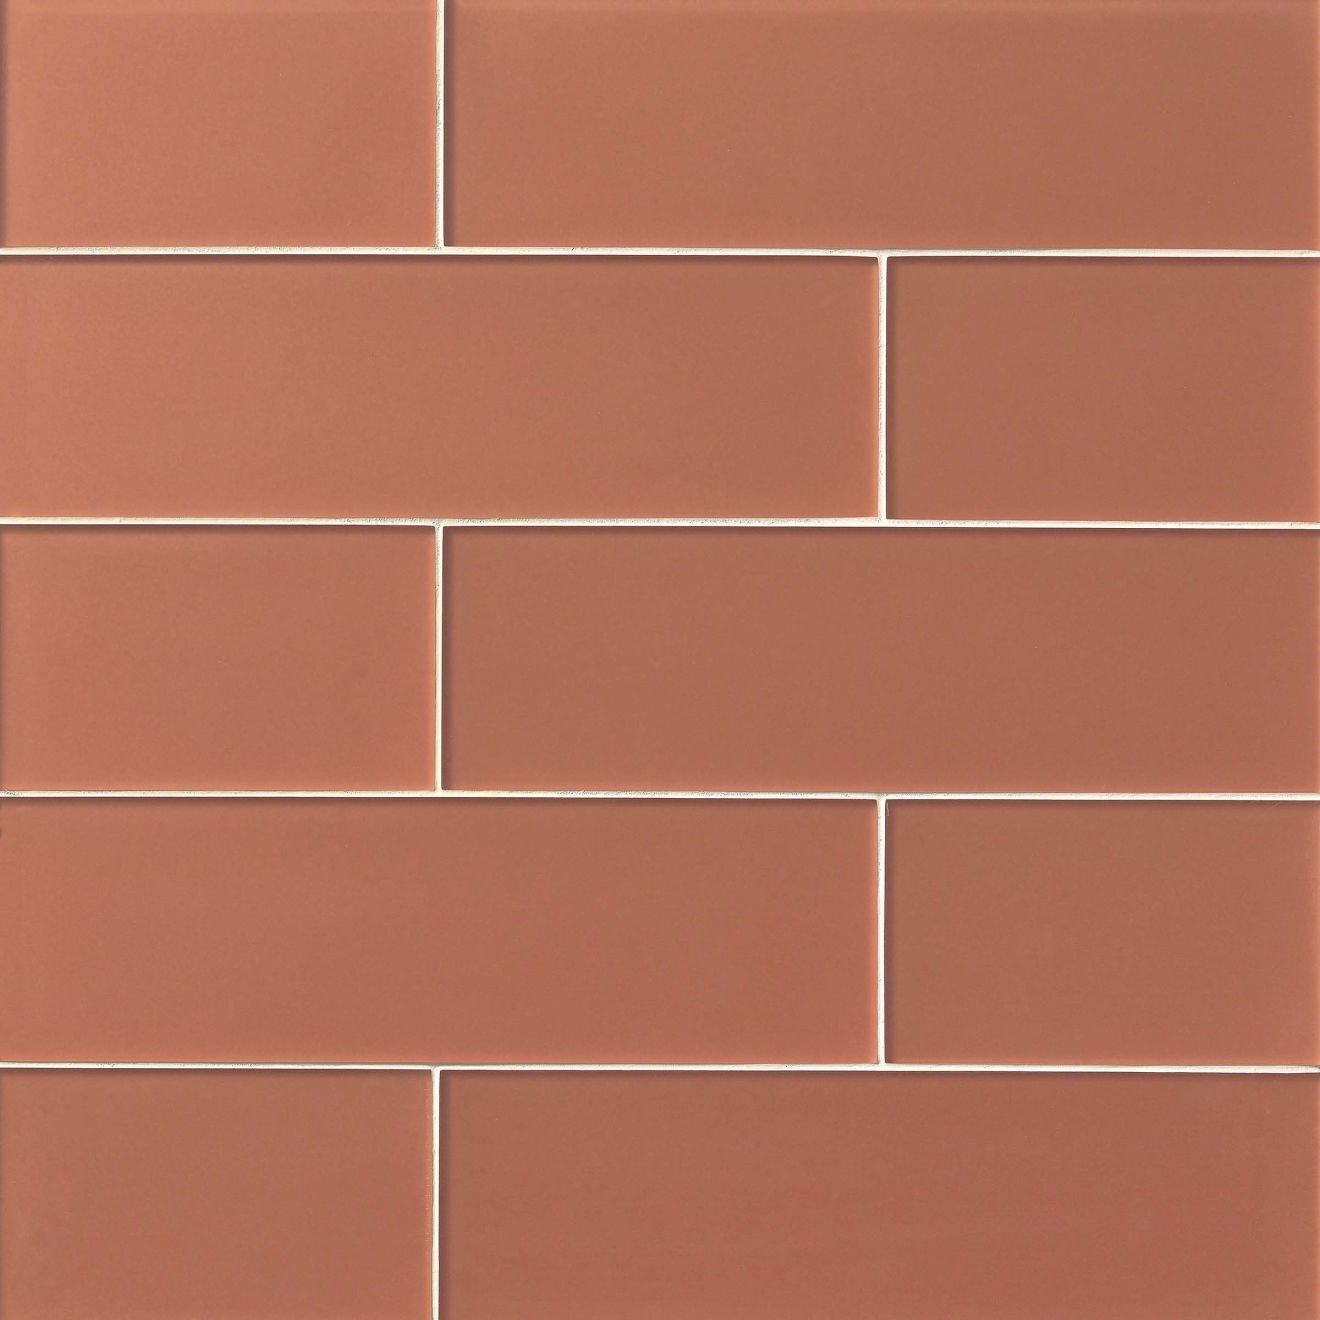 "Verve 6"" x 20"" Wall Tile in Coral Spice"